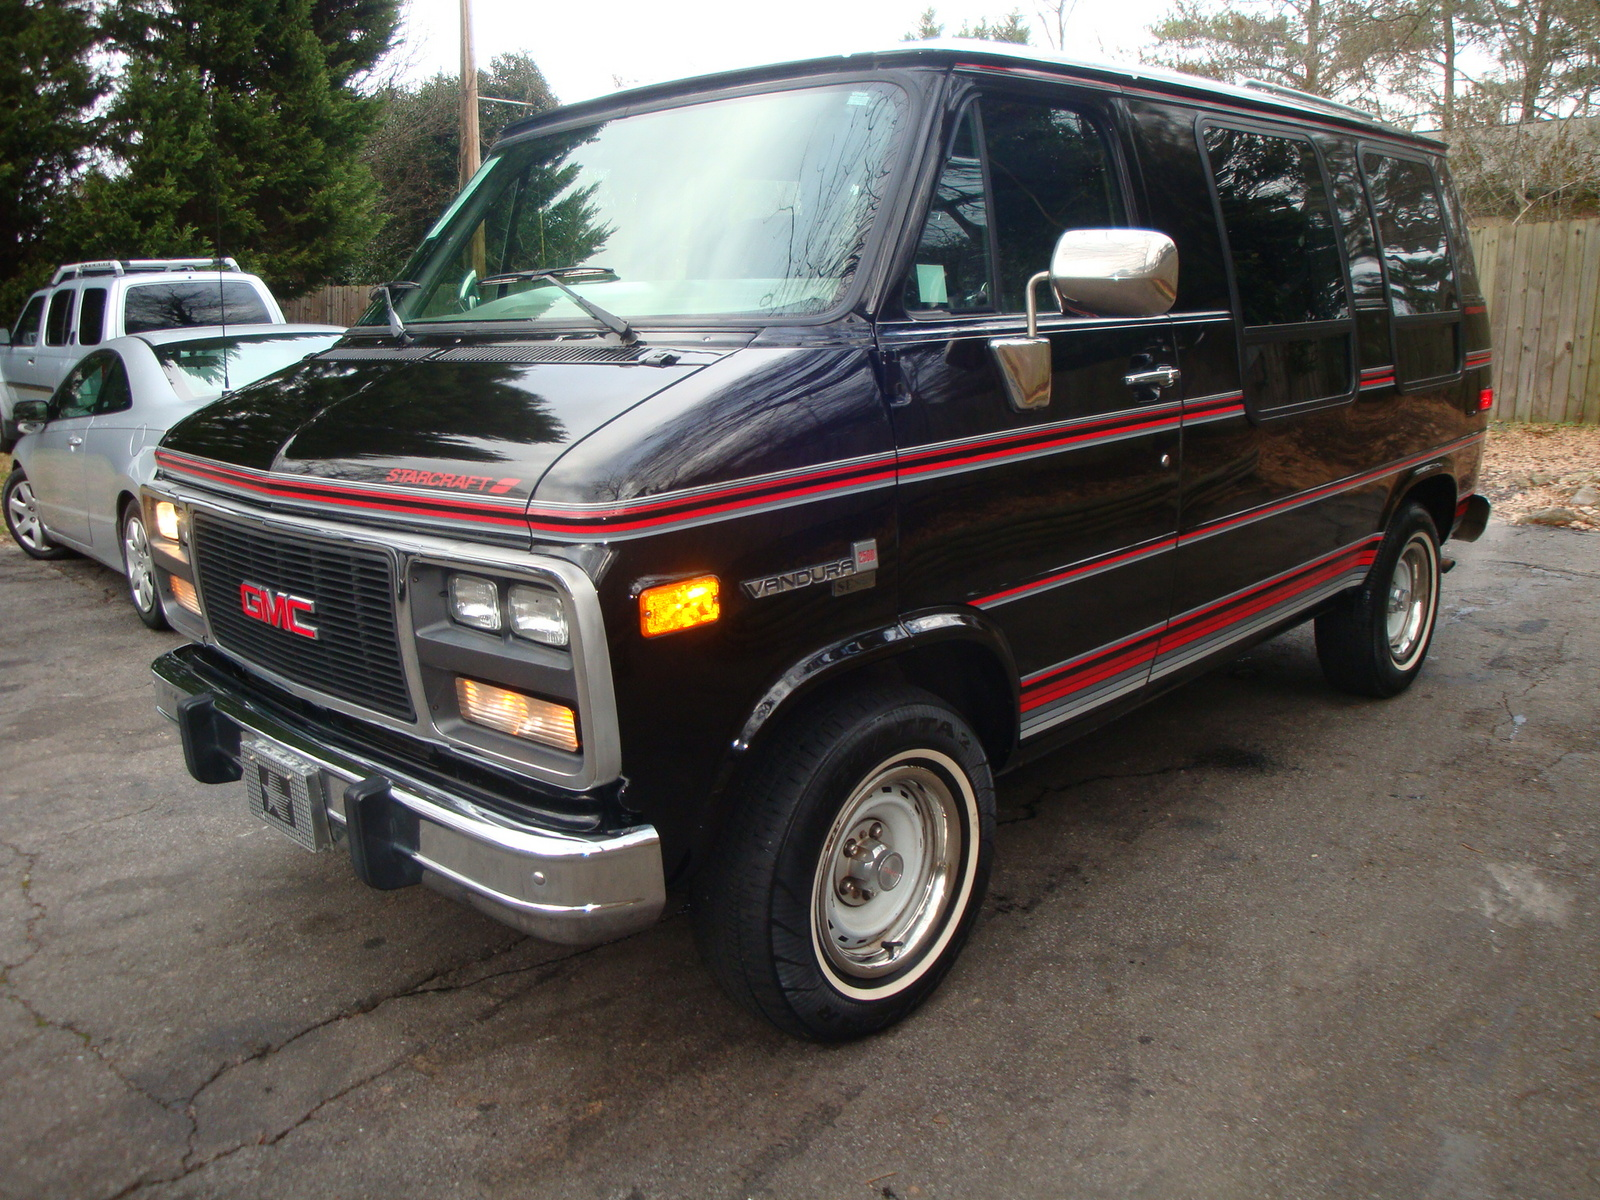 1993 gmc vandura pictures cargurus. Black Bedroom Furniture Sets. Home Design Ideas